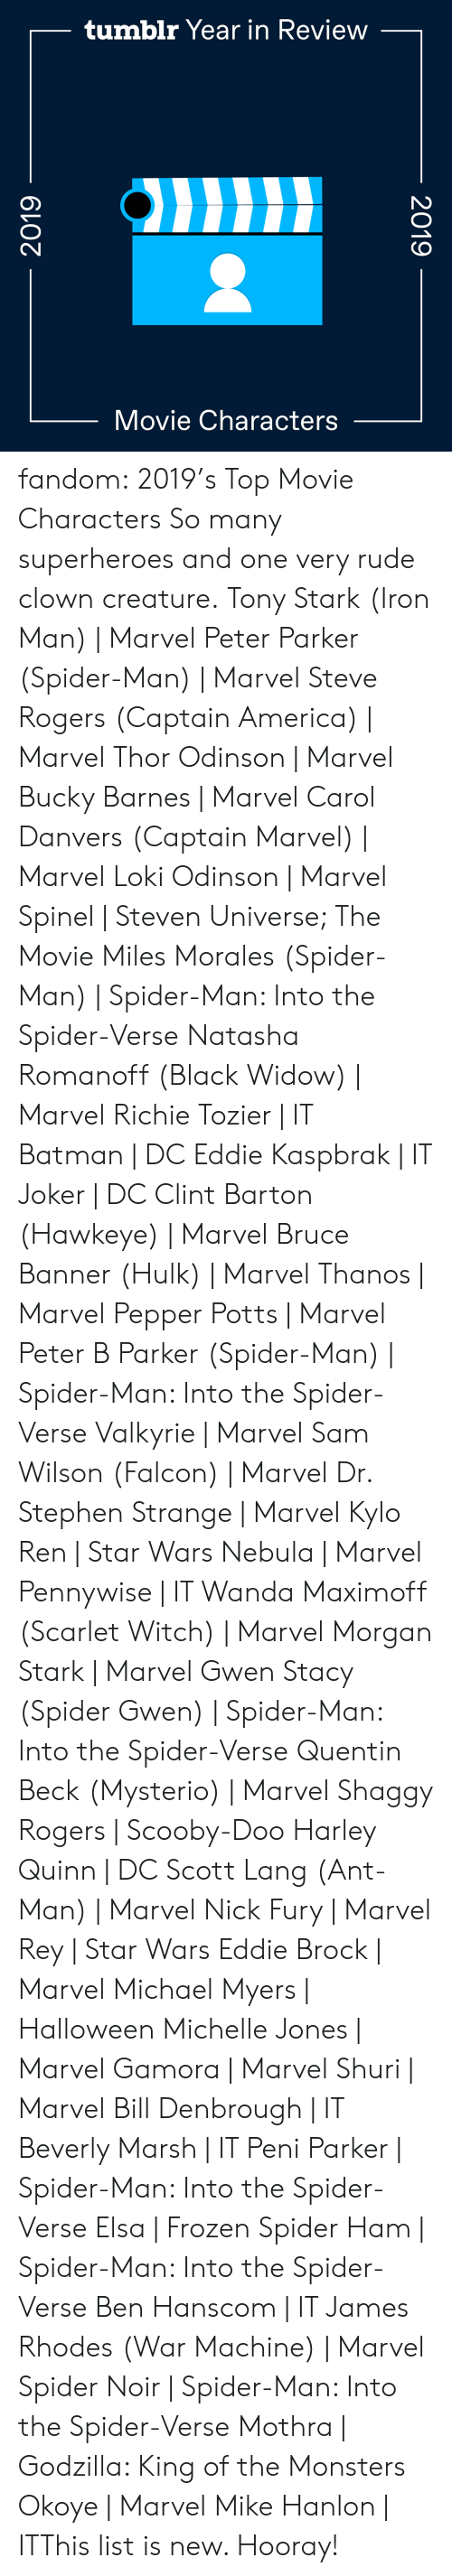 michelle: tumblr Year in Review  Movie Characters  2019  2019 fandom:  2019's Top Movie Characters  So many superheroes and one very rude clown creature.  Tony Stark (Iron Man) | Marvel  Peter Parker (Spider-Man) | Marvel  Steve Rogers (Captain America) | Marvel  Thor Odinson | Marvel  Bucky Barnes | Marvel  Carol Danvers (Captain Marvel) | Marvel  Loki Odinson | Marvel  Spinel | Steven Universe; The Movie  Miles Morales (Spider-Man) | Spider-Man: Into the Spider-Verse  Natasha Romanoff (Black Widow) | Marvel  Richie Tozier | IT  Batman | DC  Eddie Kaspbrak | IT  Joker | DC  Clint Barton (Hawkeye) | Marvel  Bruce Banner (Hulk) | Marvel  Thanos | Marvel  Pepper Potts | Marvel  Peter B Parker (Spider-Man) | Spider-Man: Into the Spider-Verse  Valkyrie | Marvel  Sam Wilson (Falcon) | Marvel  Dr. Stephen Strange | Marvel  Kylo Ren | Star Wars  Nebula | Marvel  Pennywise | IT  Wanda Maximoff (Scarlet Witch) | Marvel  Morgan Stark | Marvel  Gwen Stacy (Spider Gwen) | Spider-Man: Into the Spider-Verse  Quentin Beck (Mysterio) | Marvel  Shaggy Rogers | Scooby-Doo  Harley Quinn | DC  Scott Lang (Ant-Man) | Marvel  Nick Fury | Marvel  Rey | Star Wars  Eddie Brock | Marvel  Michael Myers | Halloween  Michelle Jones | Marvel  Gamora | Marvel  Shuri | Marvel  Bill Denbrough | IT  Beverly Marsh | IT  Peni Parker | Spider-Man: Into the Spider-Verse  Elsa | Frozen  Spider Ham | Spider-Man: Into the Spider-Verse  Ben Hanscom | IT  James Rhodes (War Machine) | Marvel  Spider Noir | Spider-Man: Into the Spider-Verse  Mothra | Godzilla: King of the Monsters  Okoye | Marvel Mike Hanlon | ITThis list is new. Hooray!